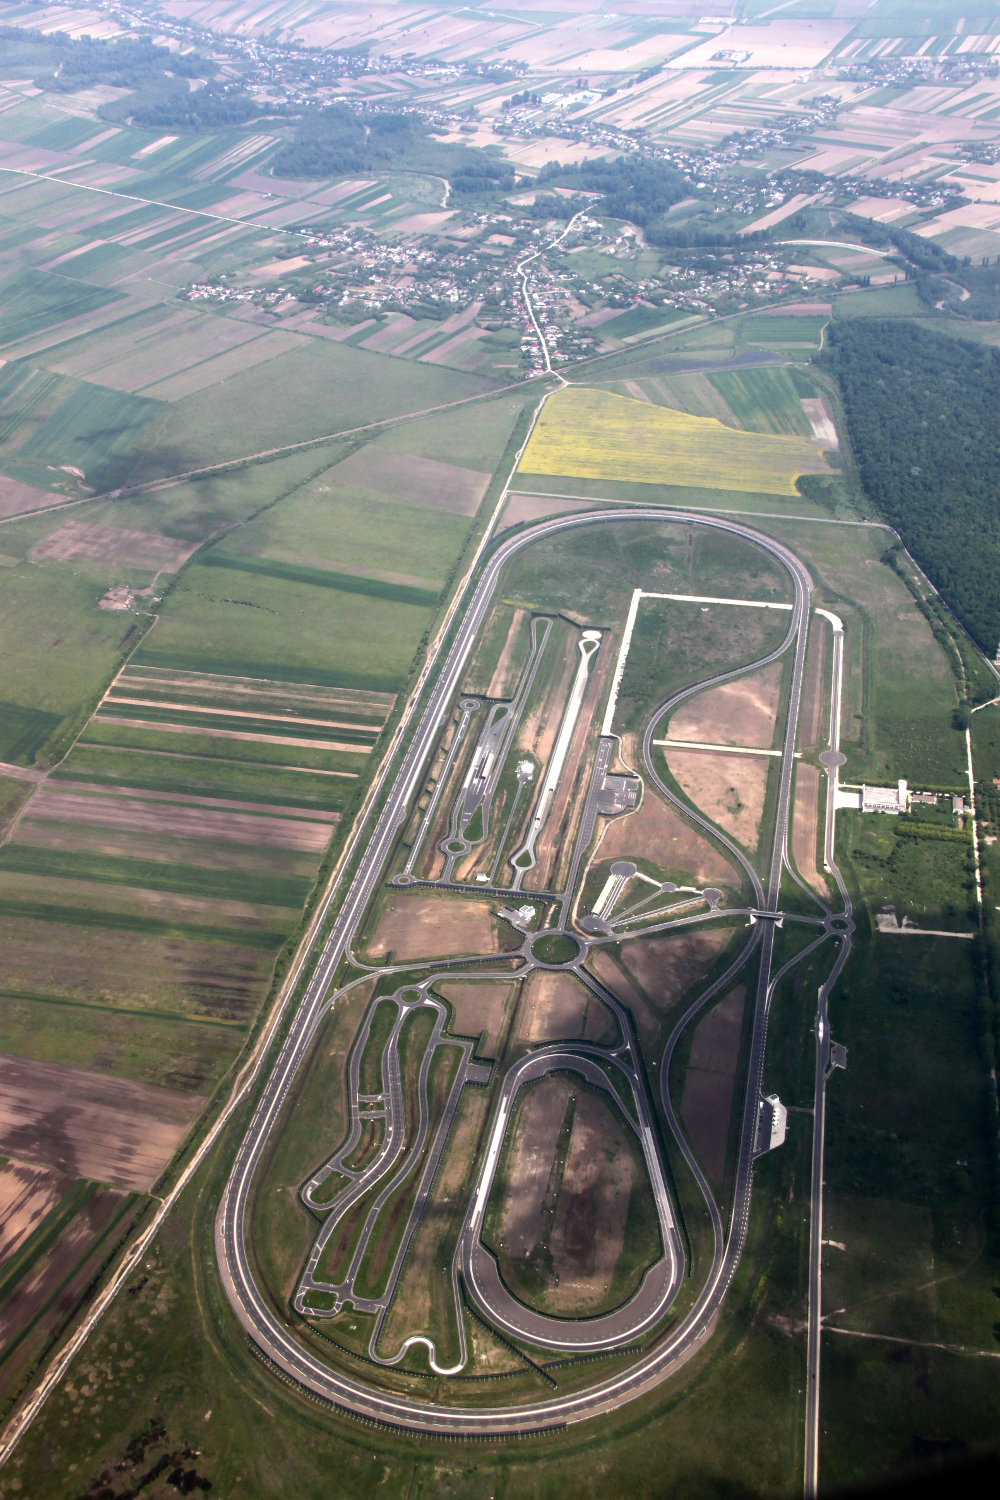 Race track in Titu, Romania